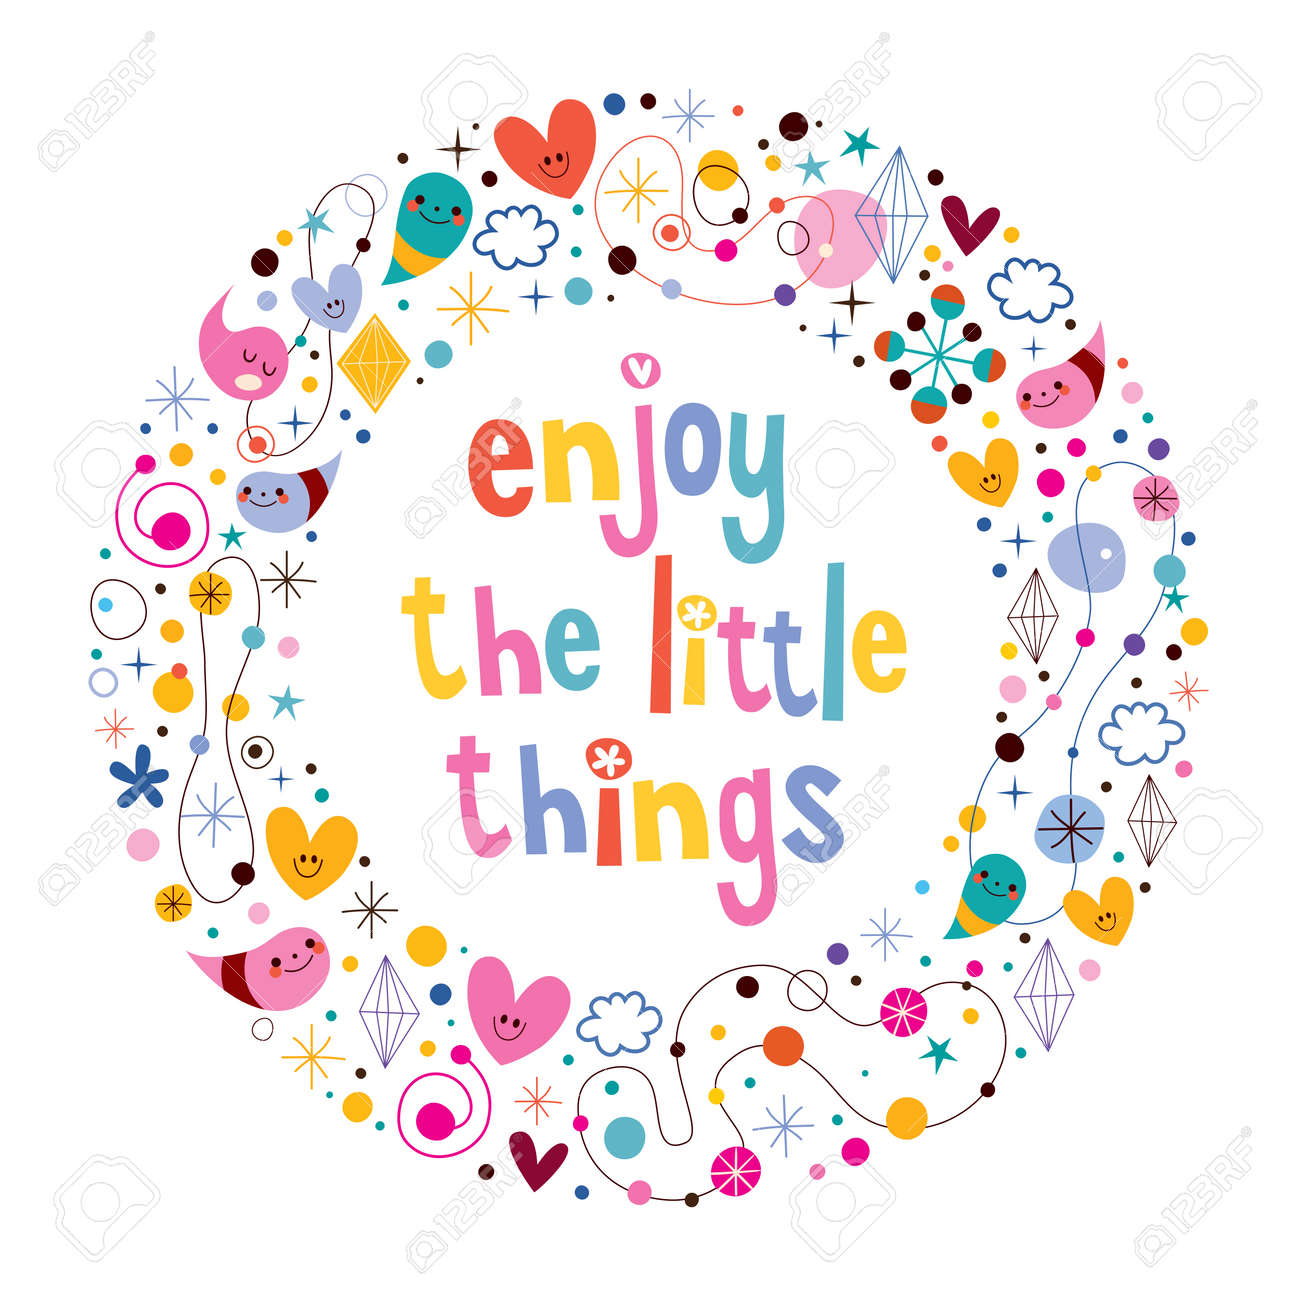 Enjoy The Little Things Quote Stock Vector   33378706